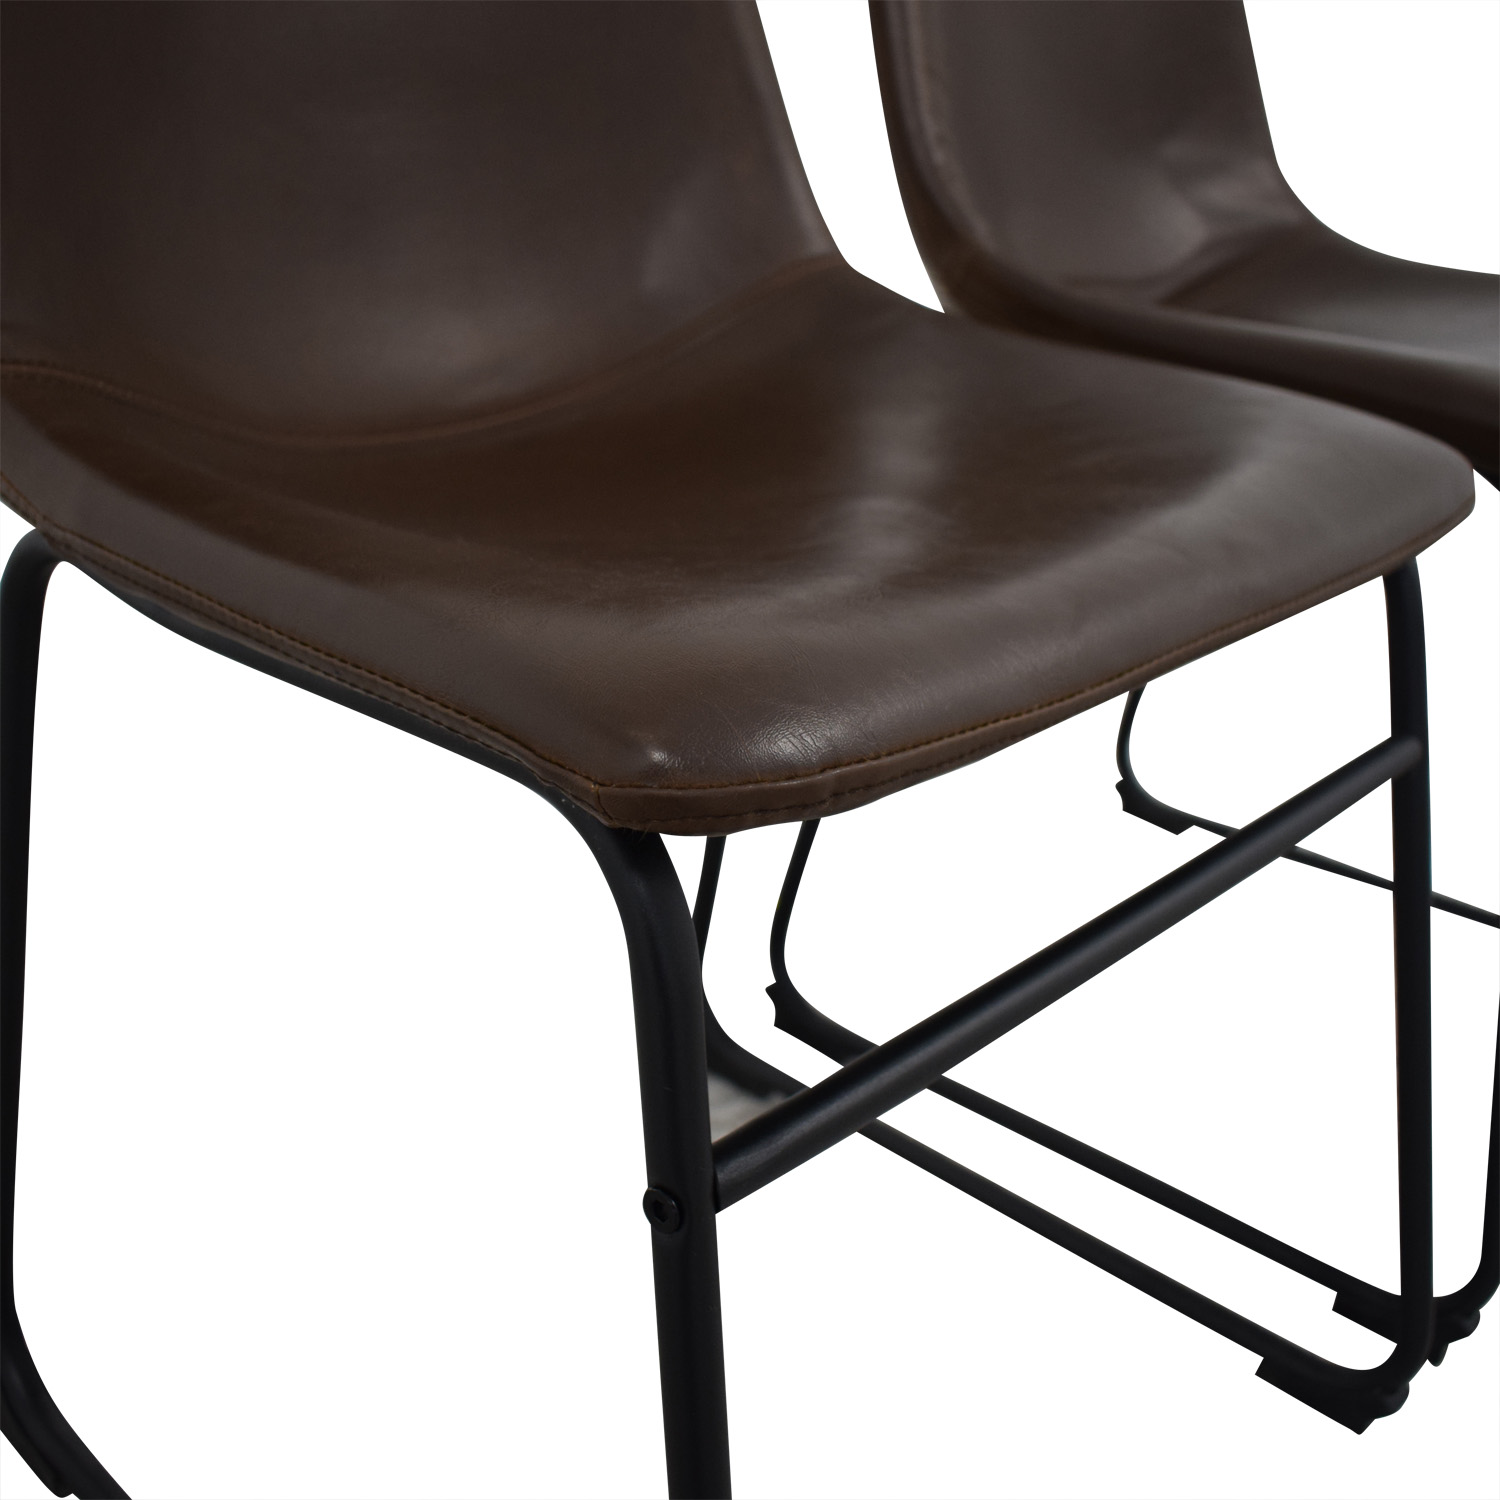 Walker Edison Walker Edison Industrial Faux Leather Dining Chairs Dining Chairs